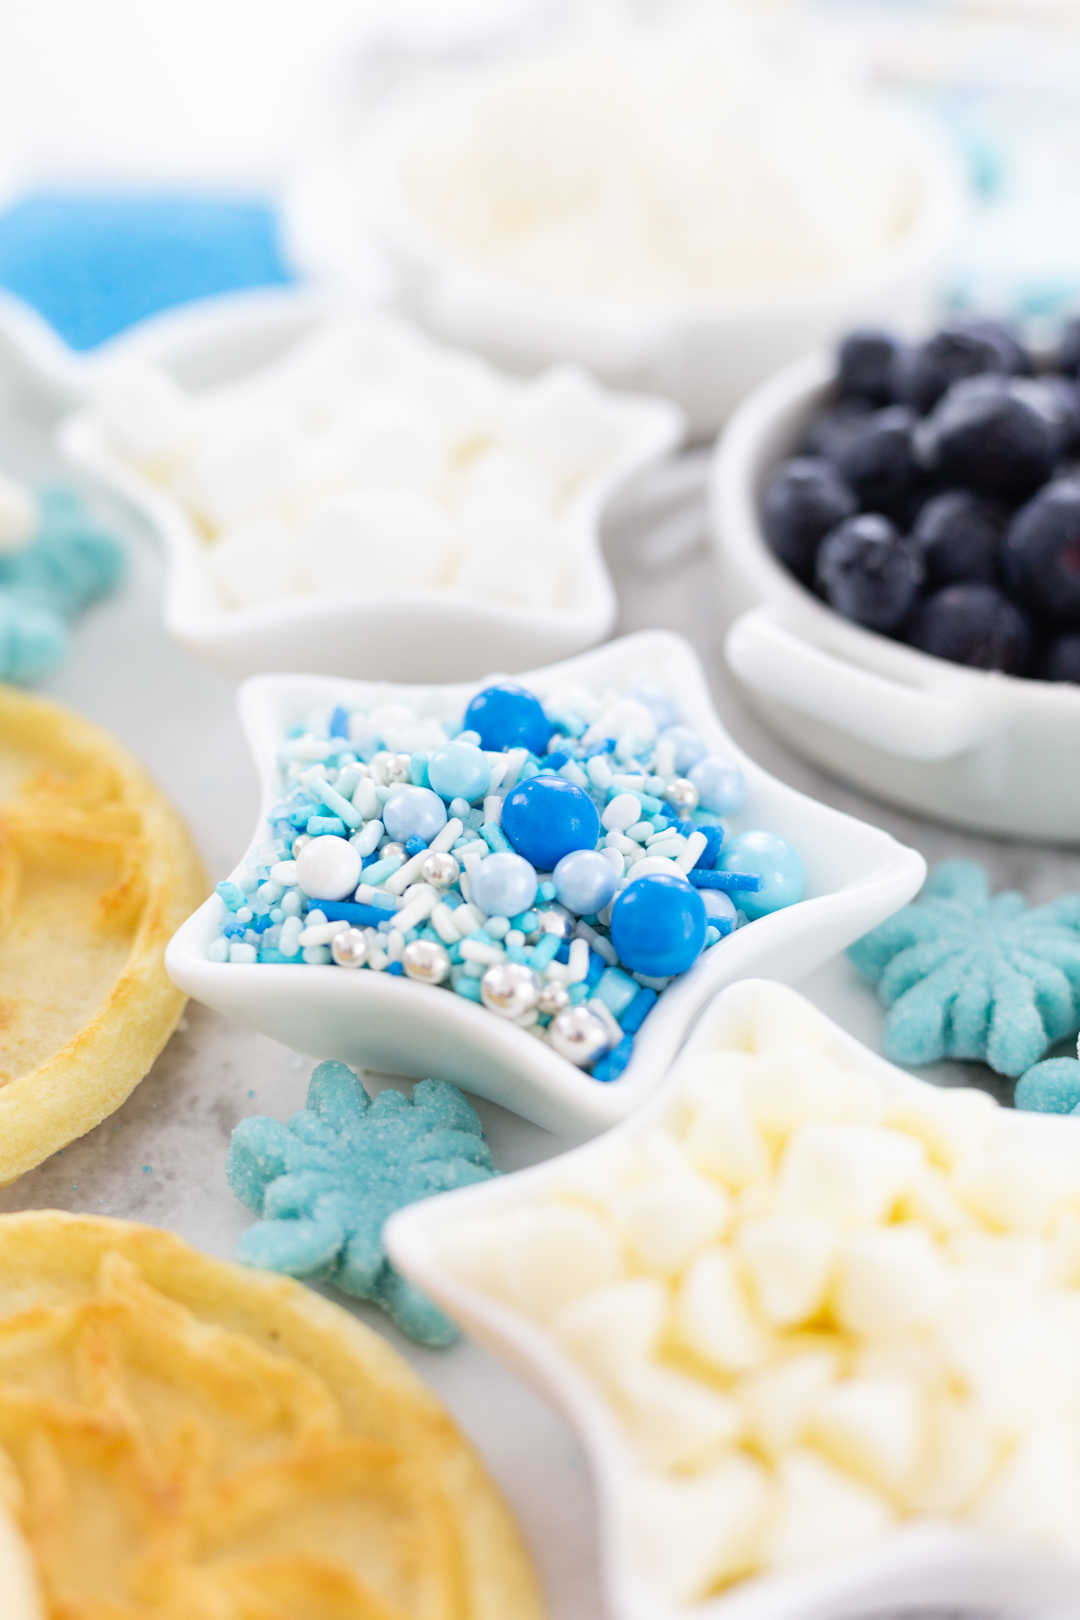 pretty frozen movie or cinderella inspired sprinkle mix with shades of blue, white and silver